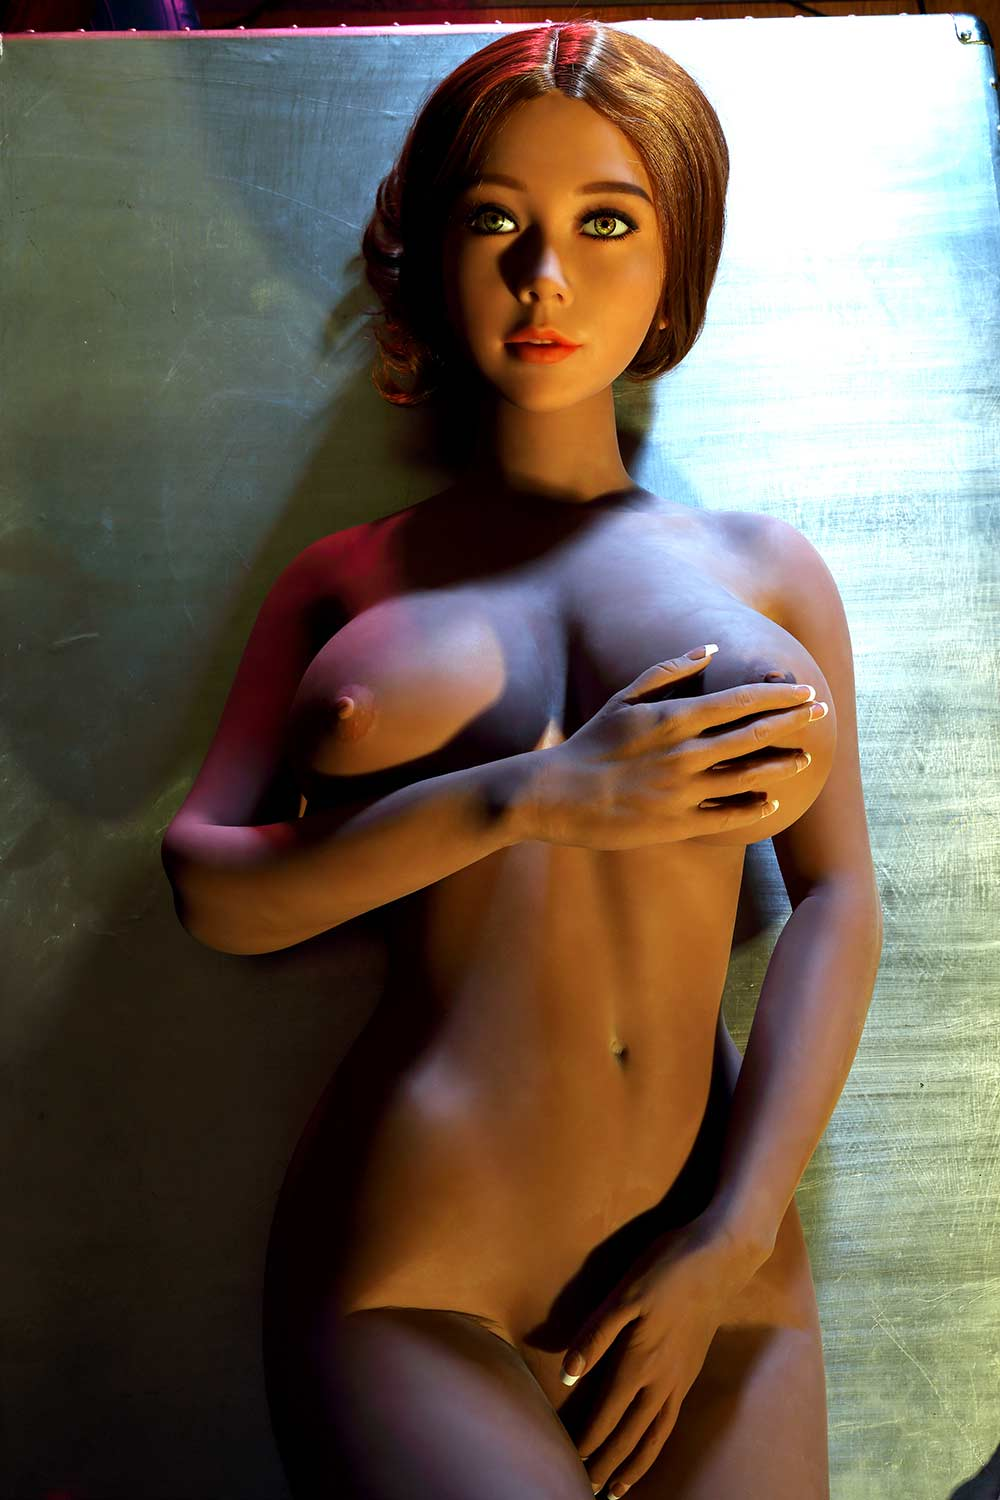 Sex doll with one hand covering the breast